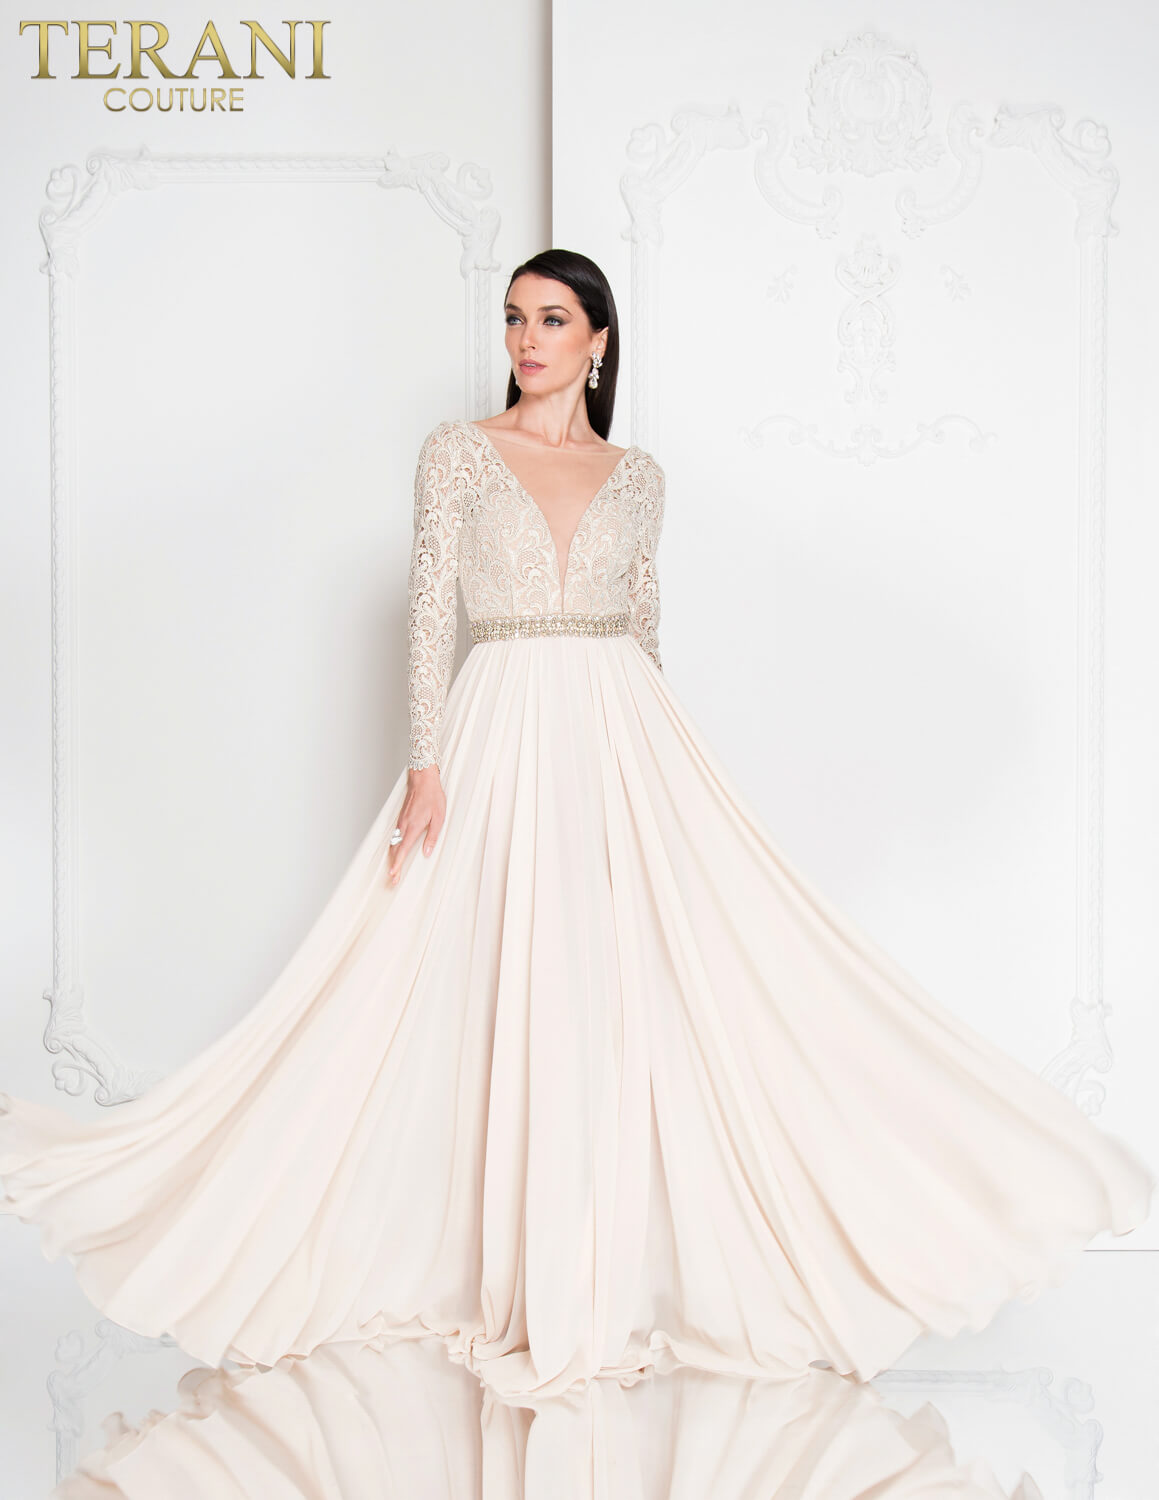 Rins Bridal | Bridal and Prom Shop in San Carlos, California